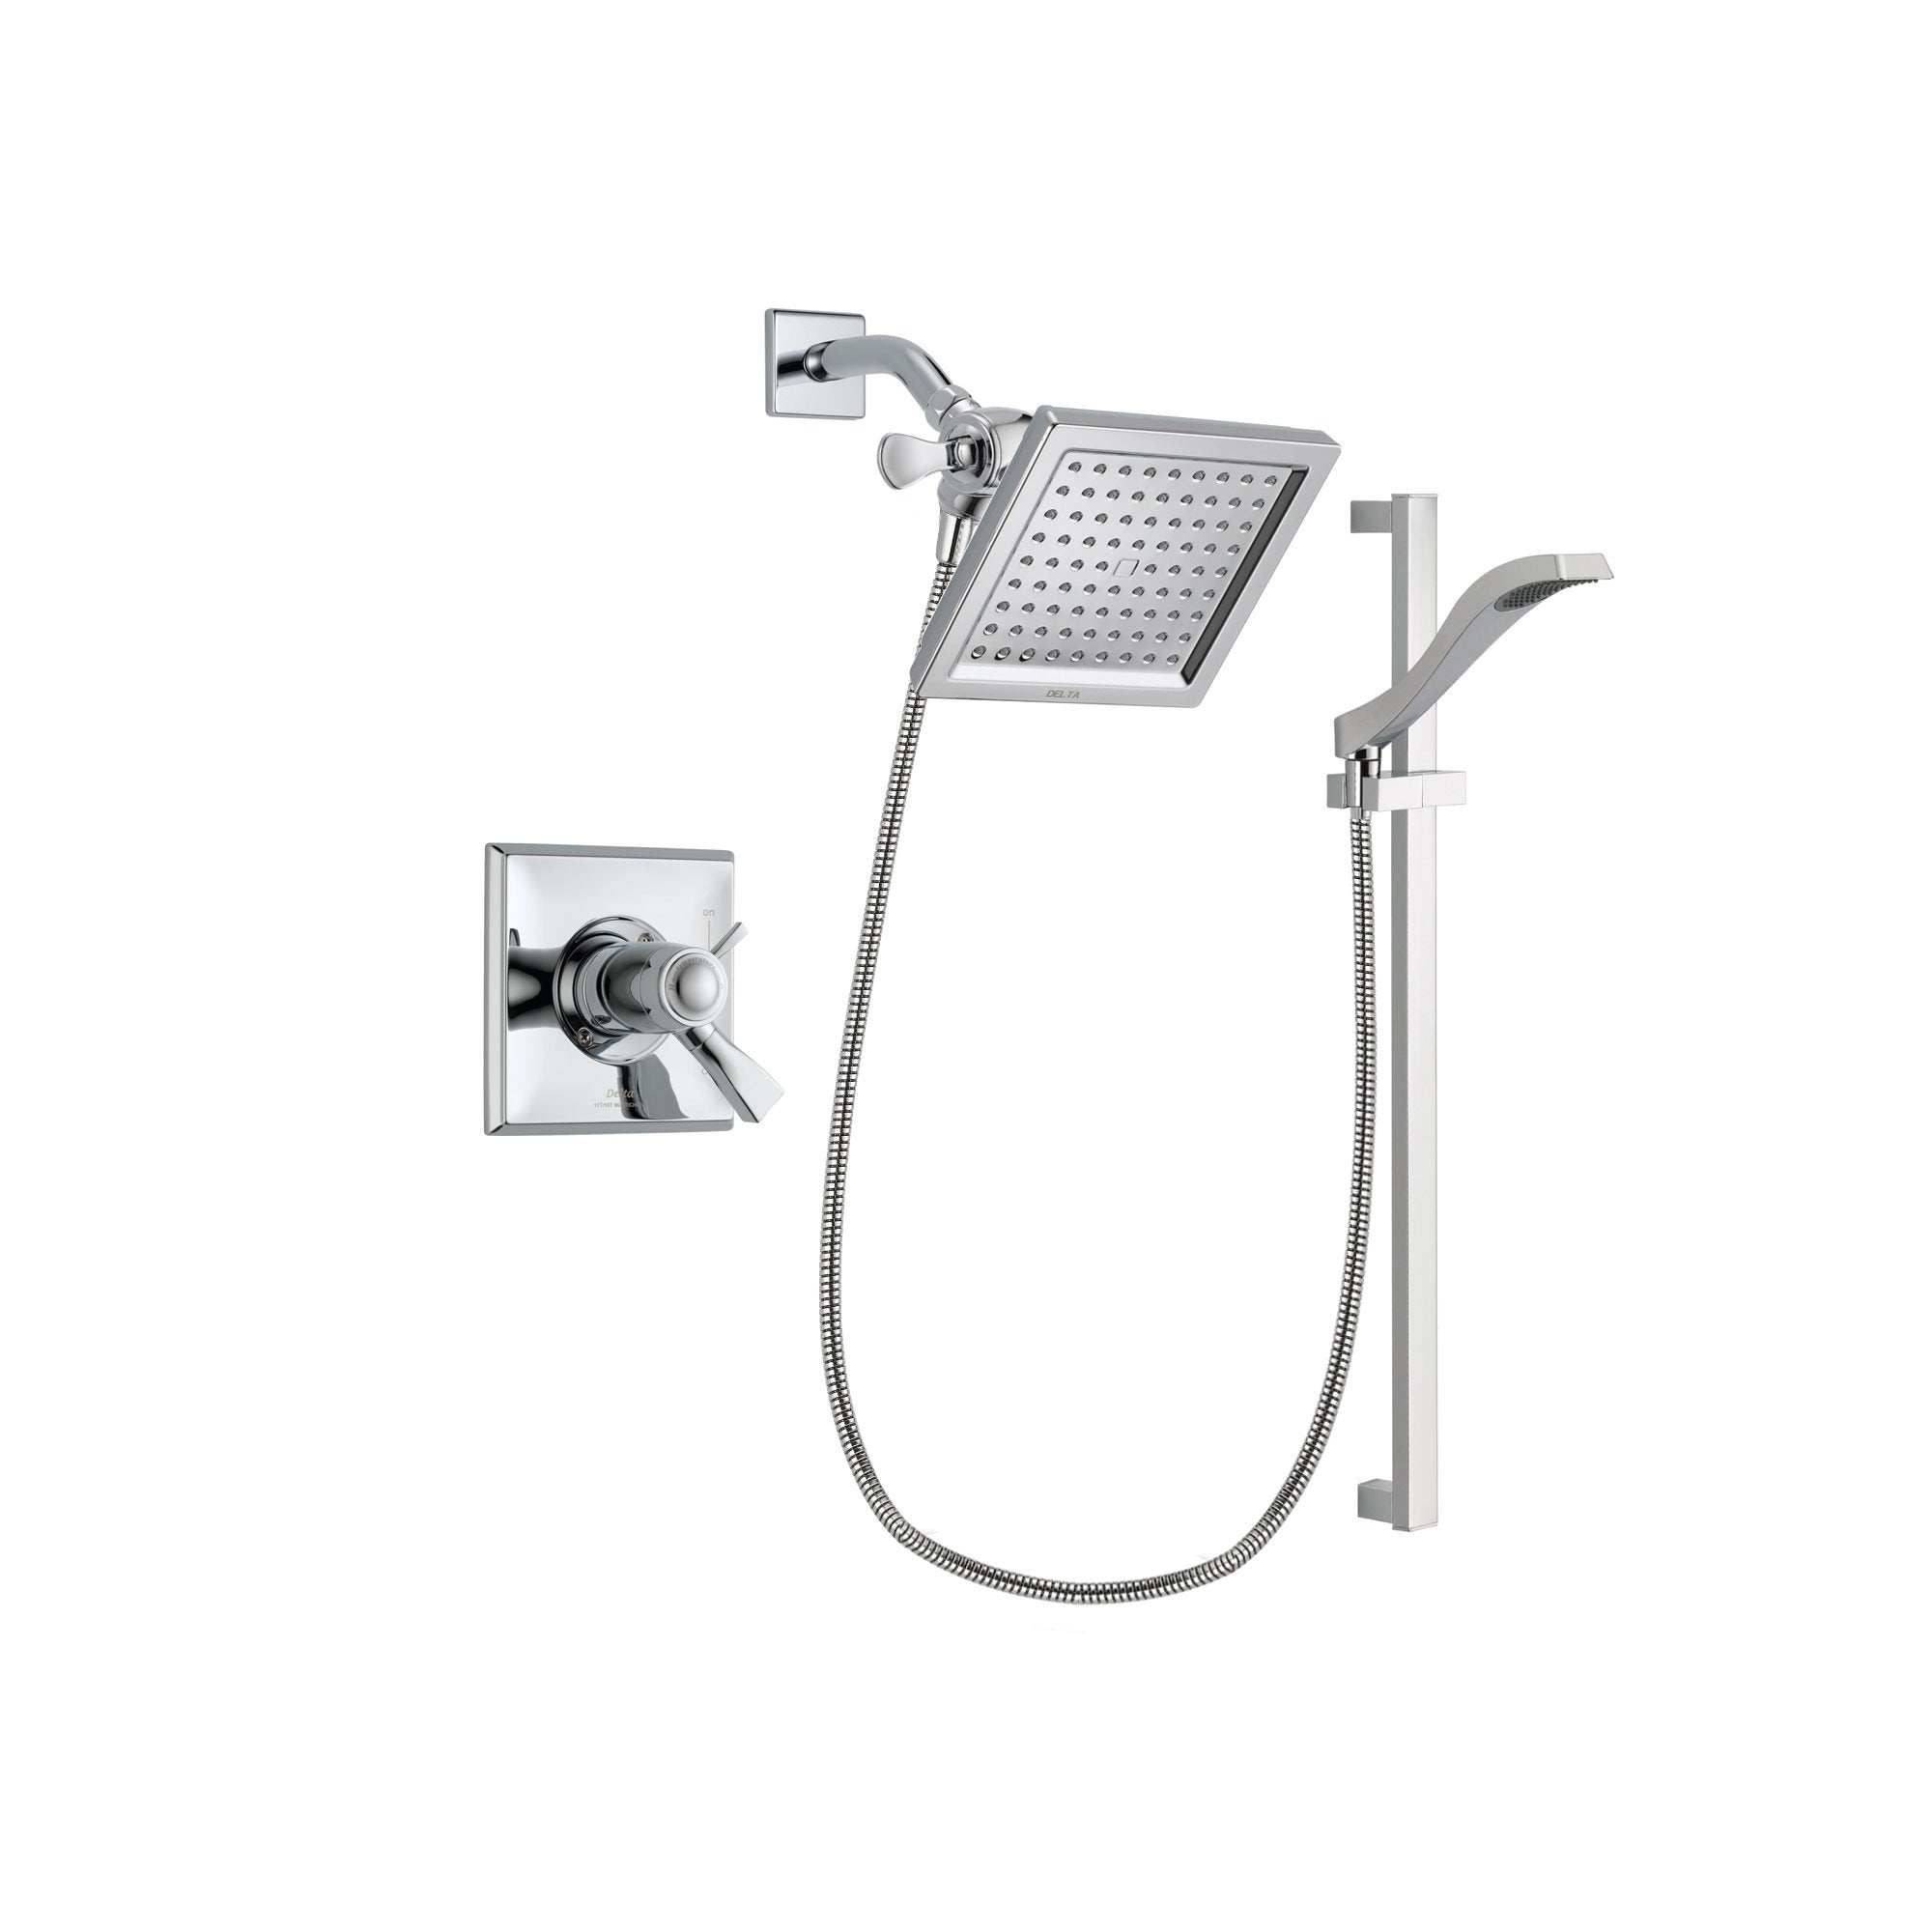 Delta Dryden Chrome Shower Faucet System w/ Shower Head and Hand Shower DSP0161V